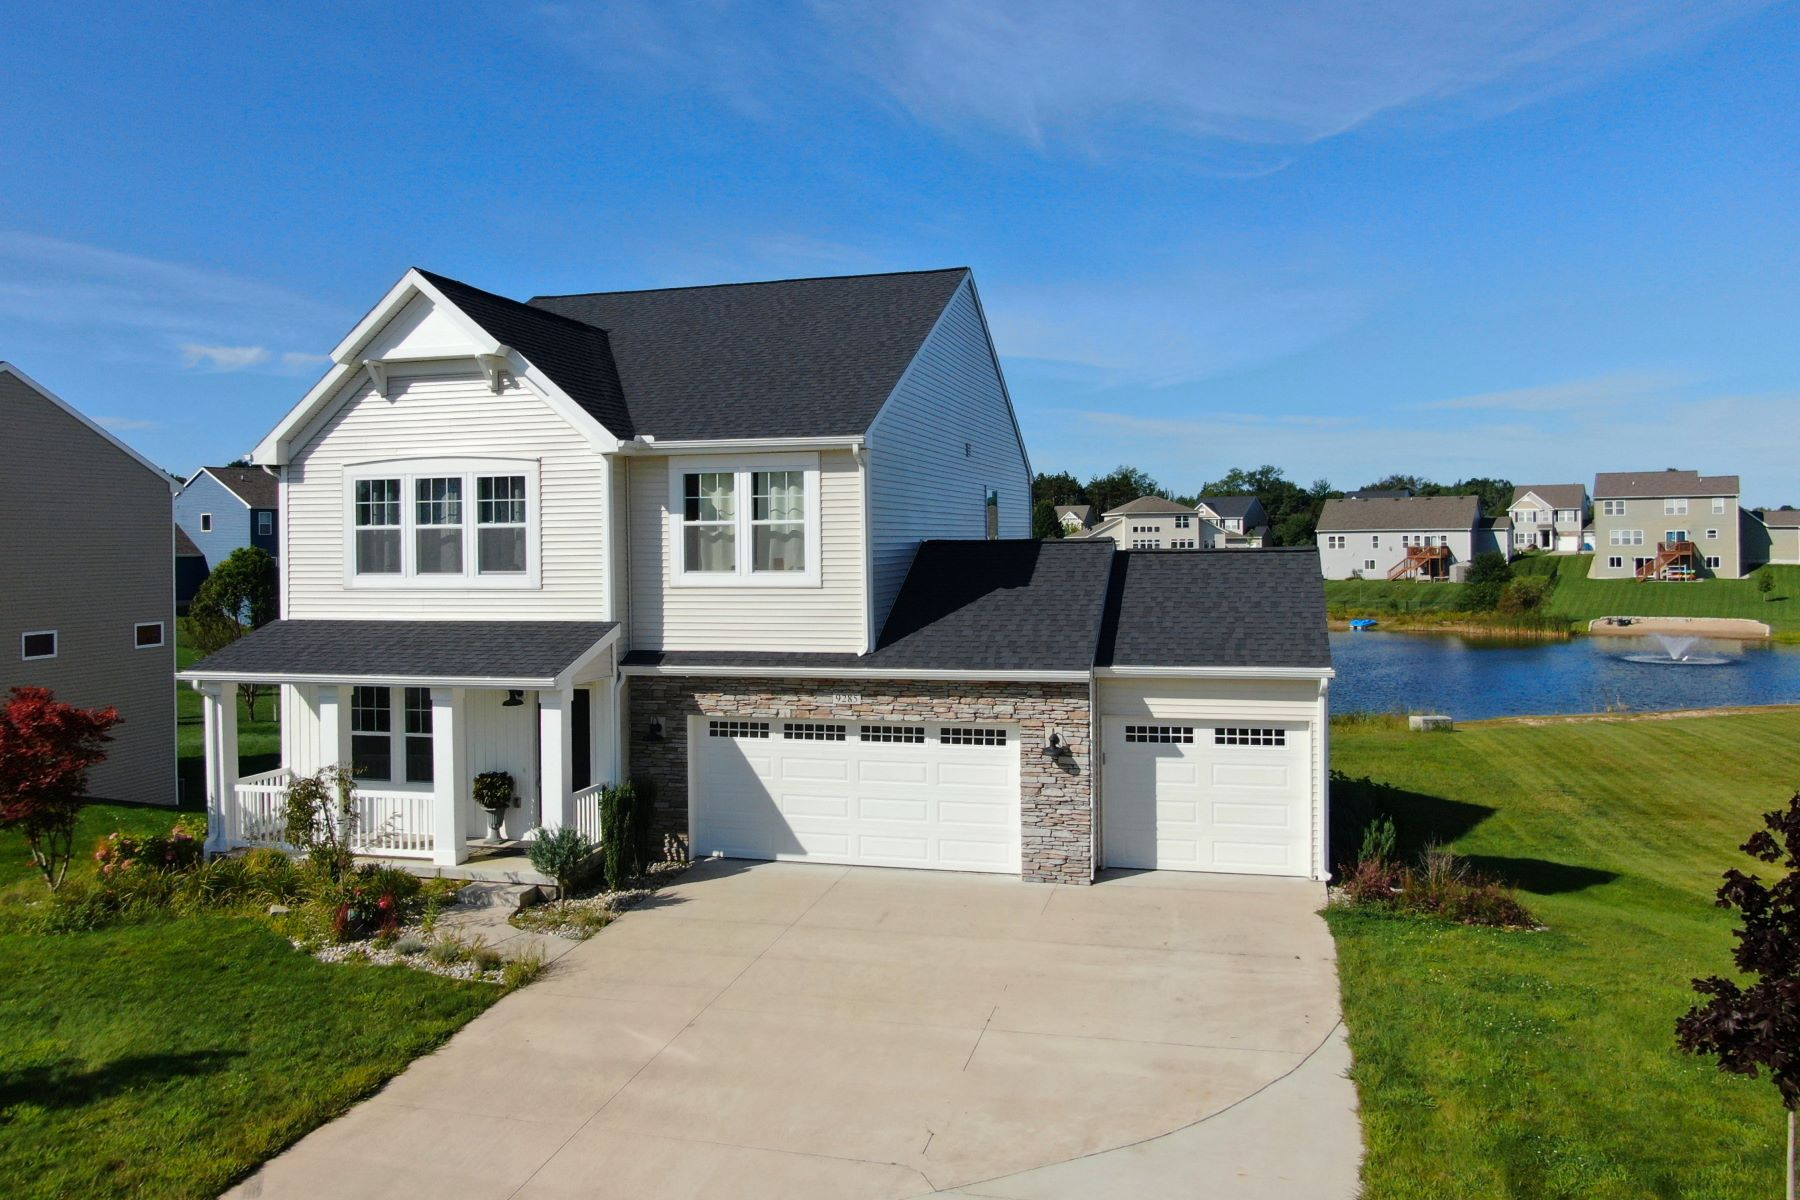 Single Family Homes for Sale at Refined West Olive 9285 Pier Place West Olive, Michigan 49460 United States